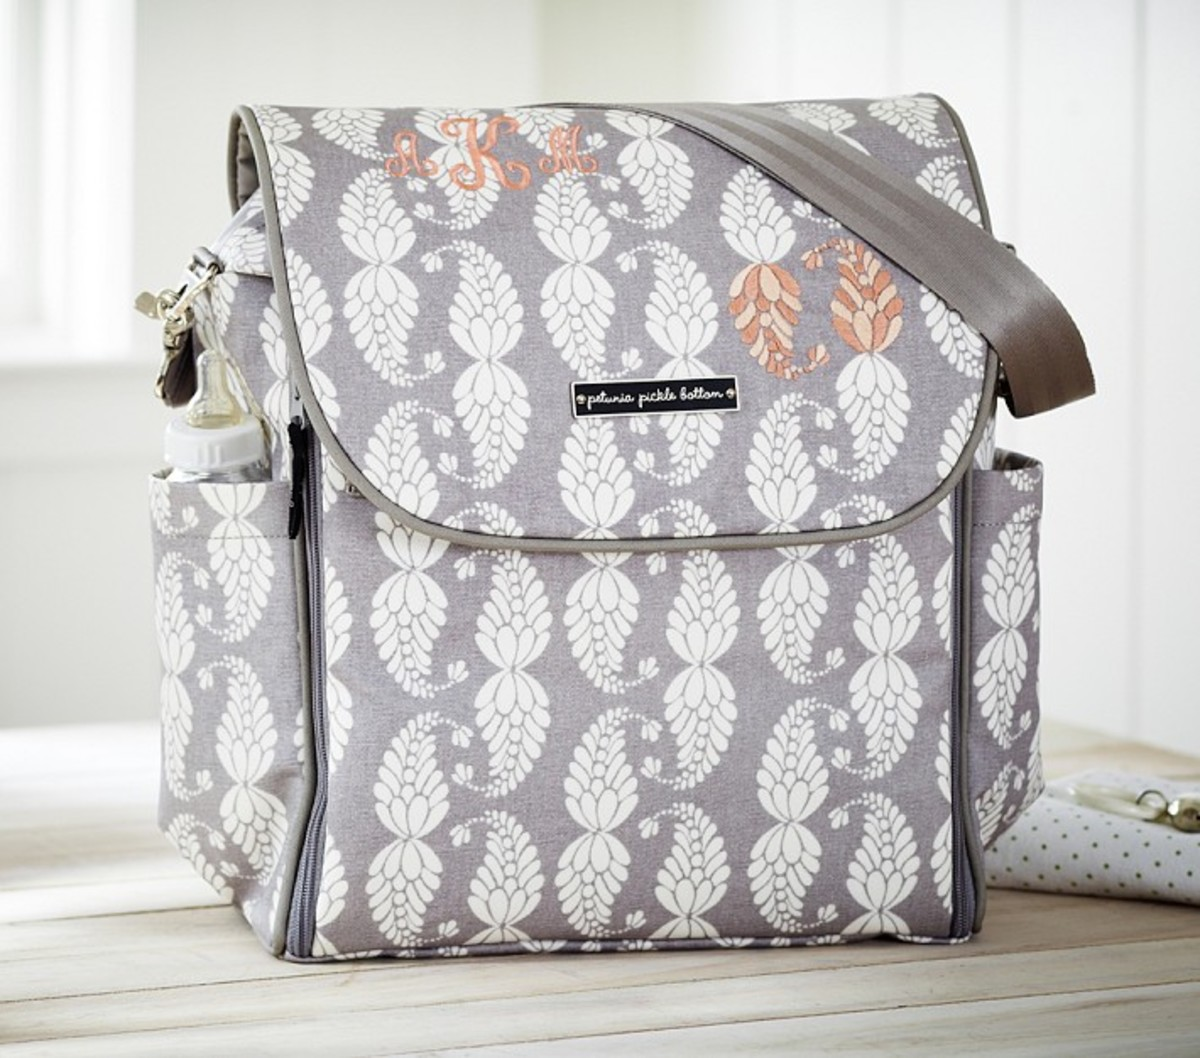 An adorable diaper bag from Petunia PIcklebottoms